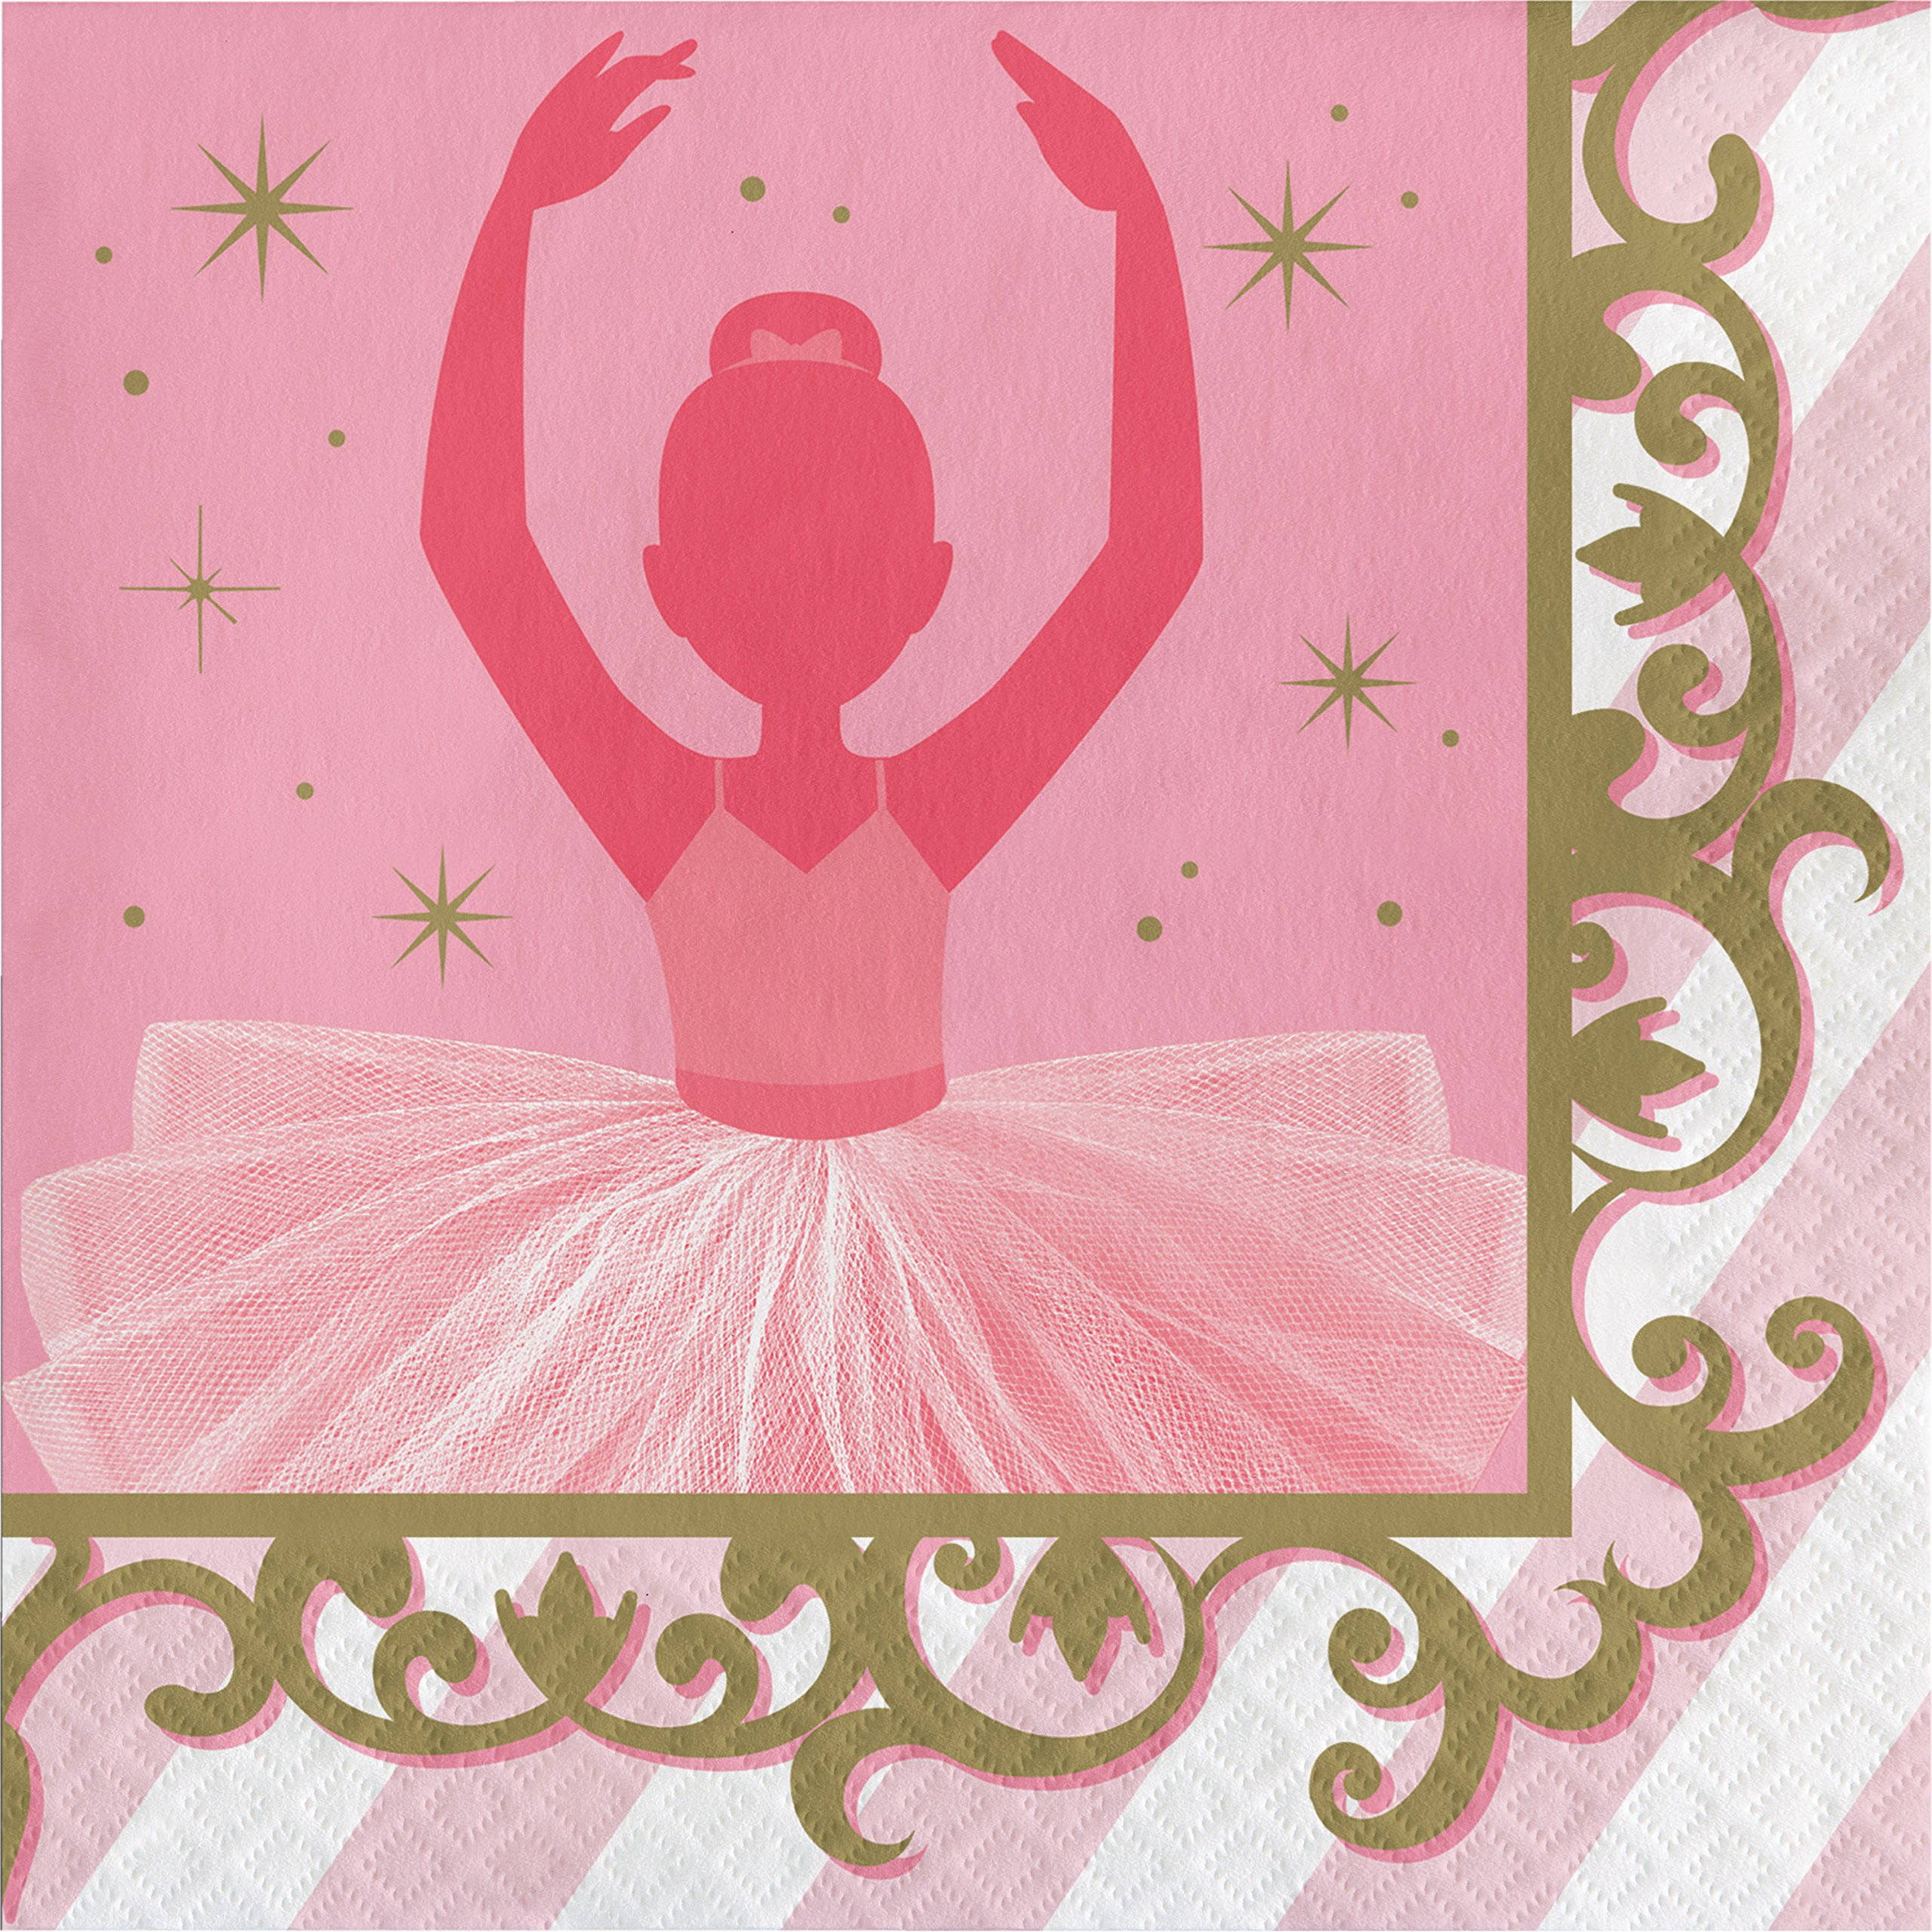 Ballet Napkins, 48 ct by Creative Converting